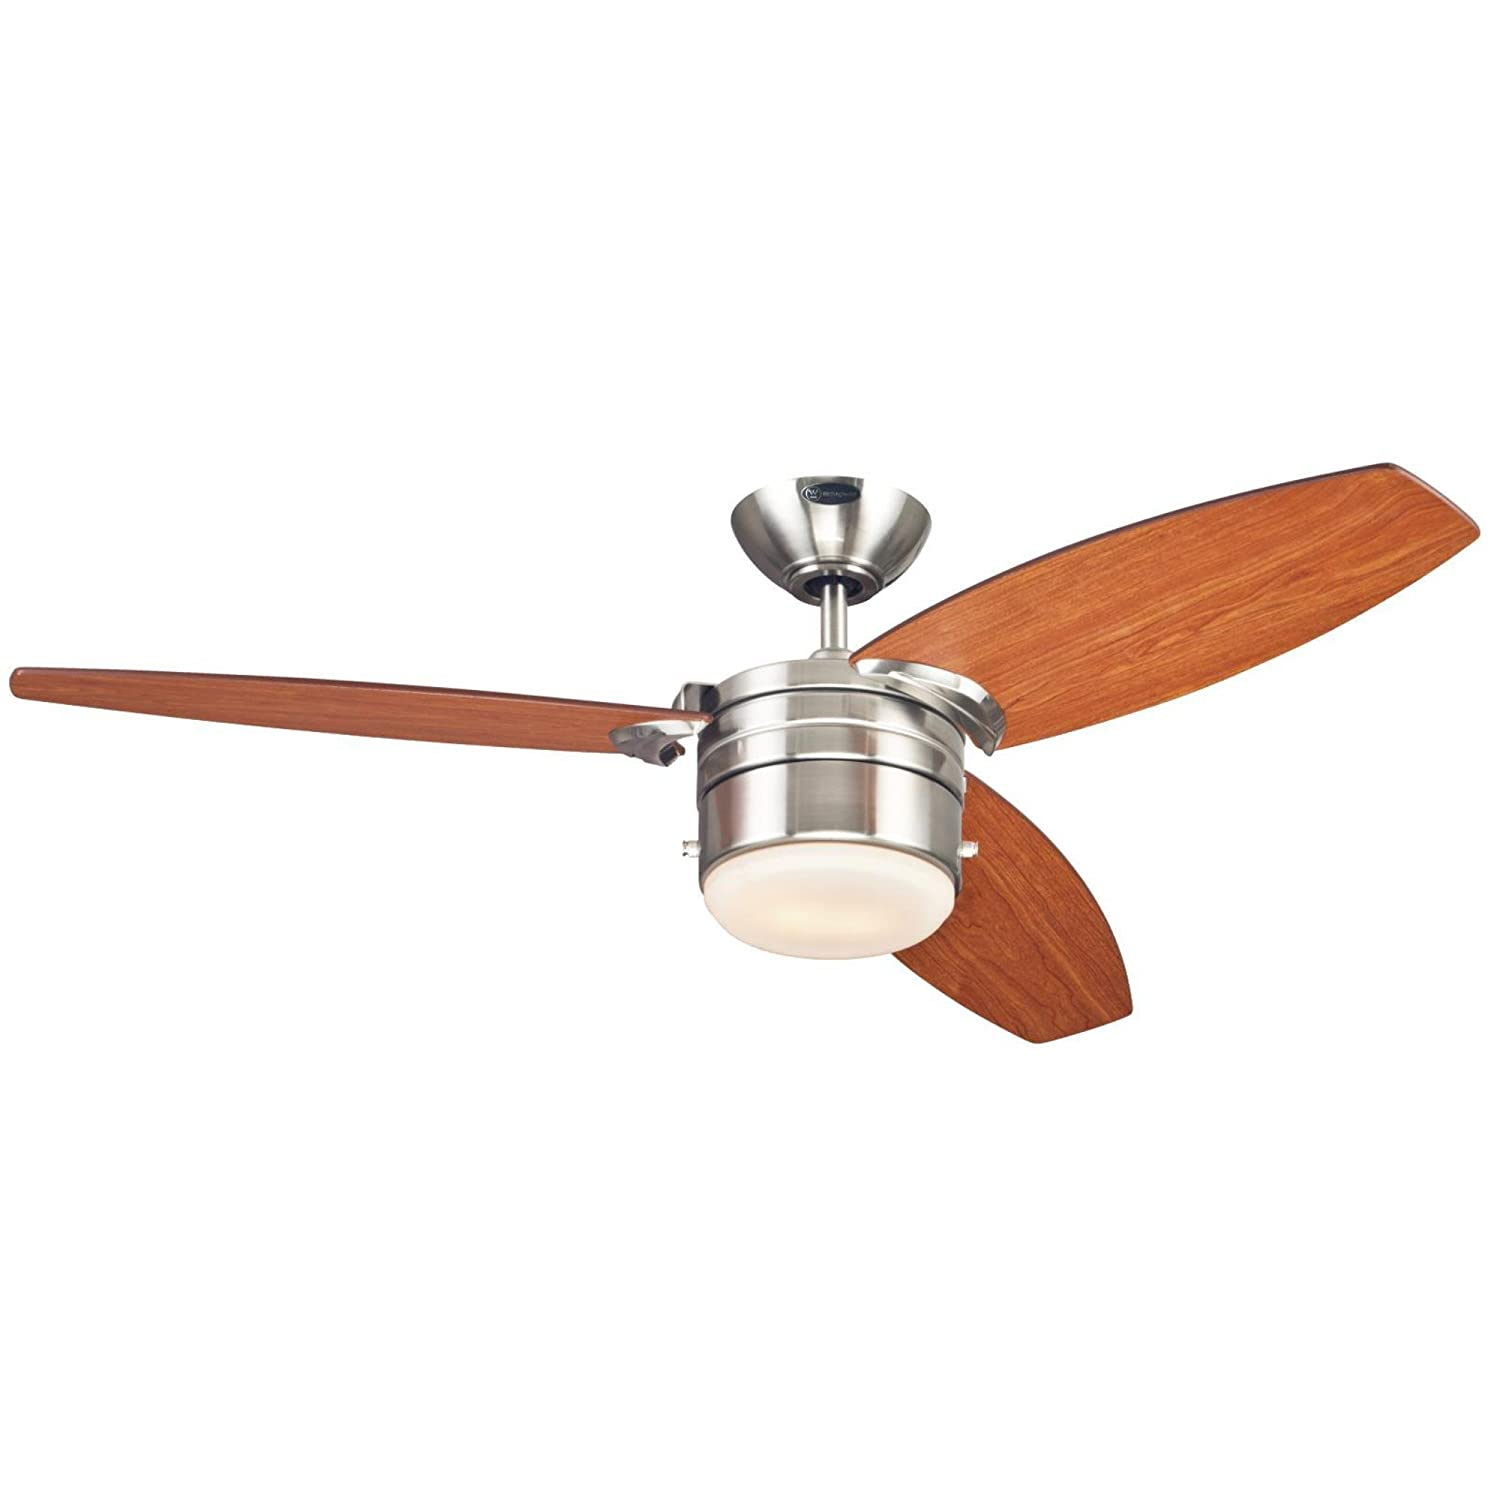 Westinghouse 7247400 Lavada One-Light Reversible Three-Blade Indoor Ceiling Fan, 48-Inch, Brushed Nickel Finish with Opal Frosted Glass